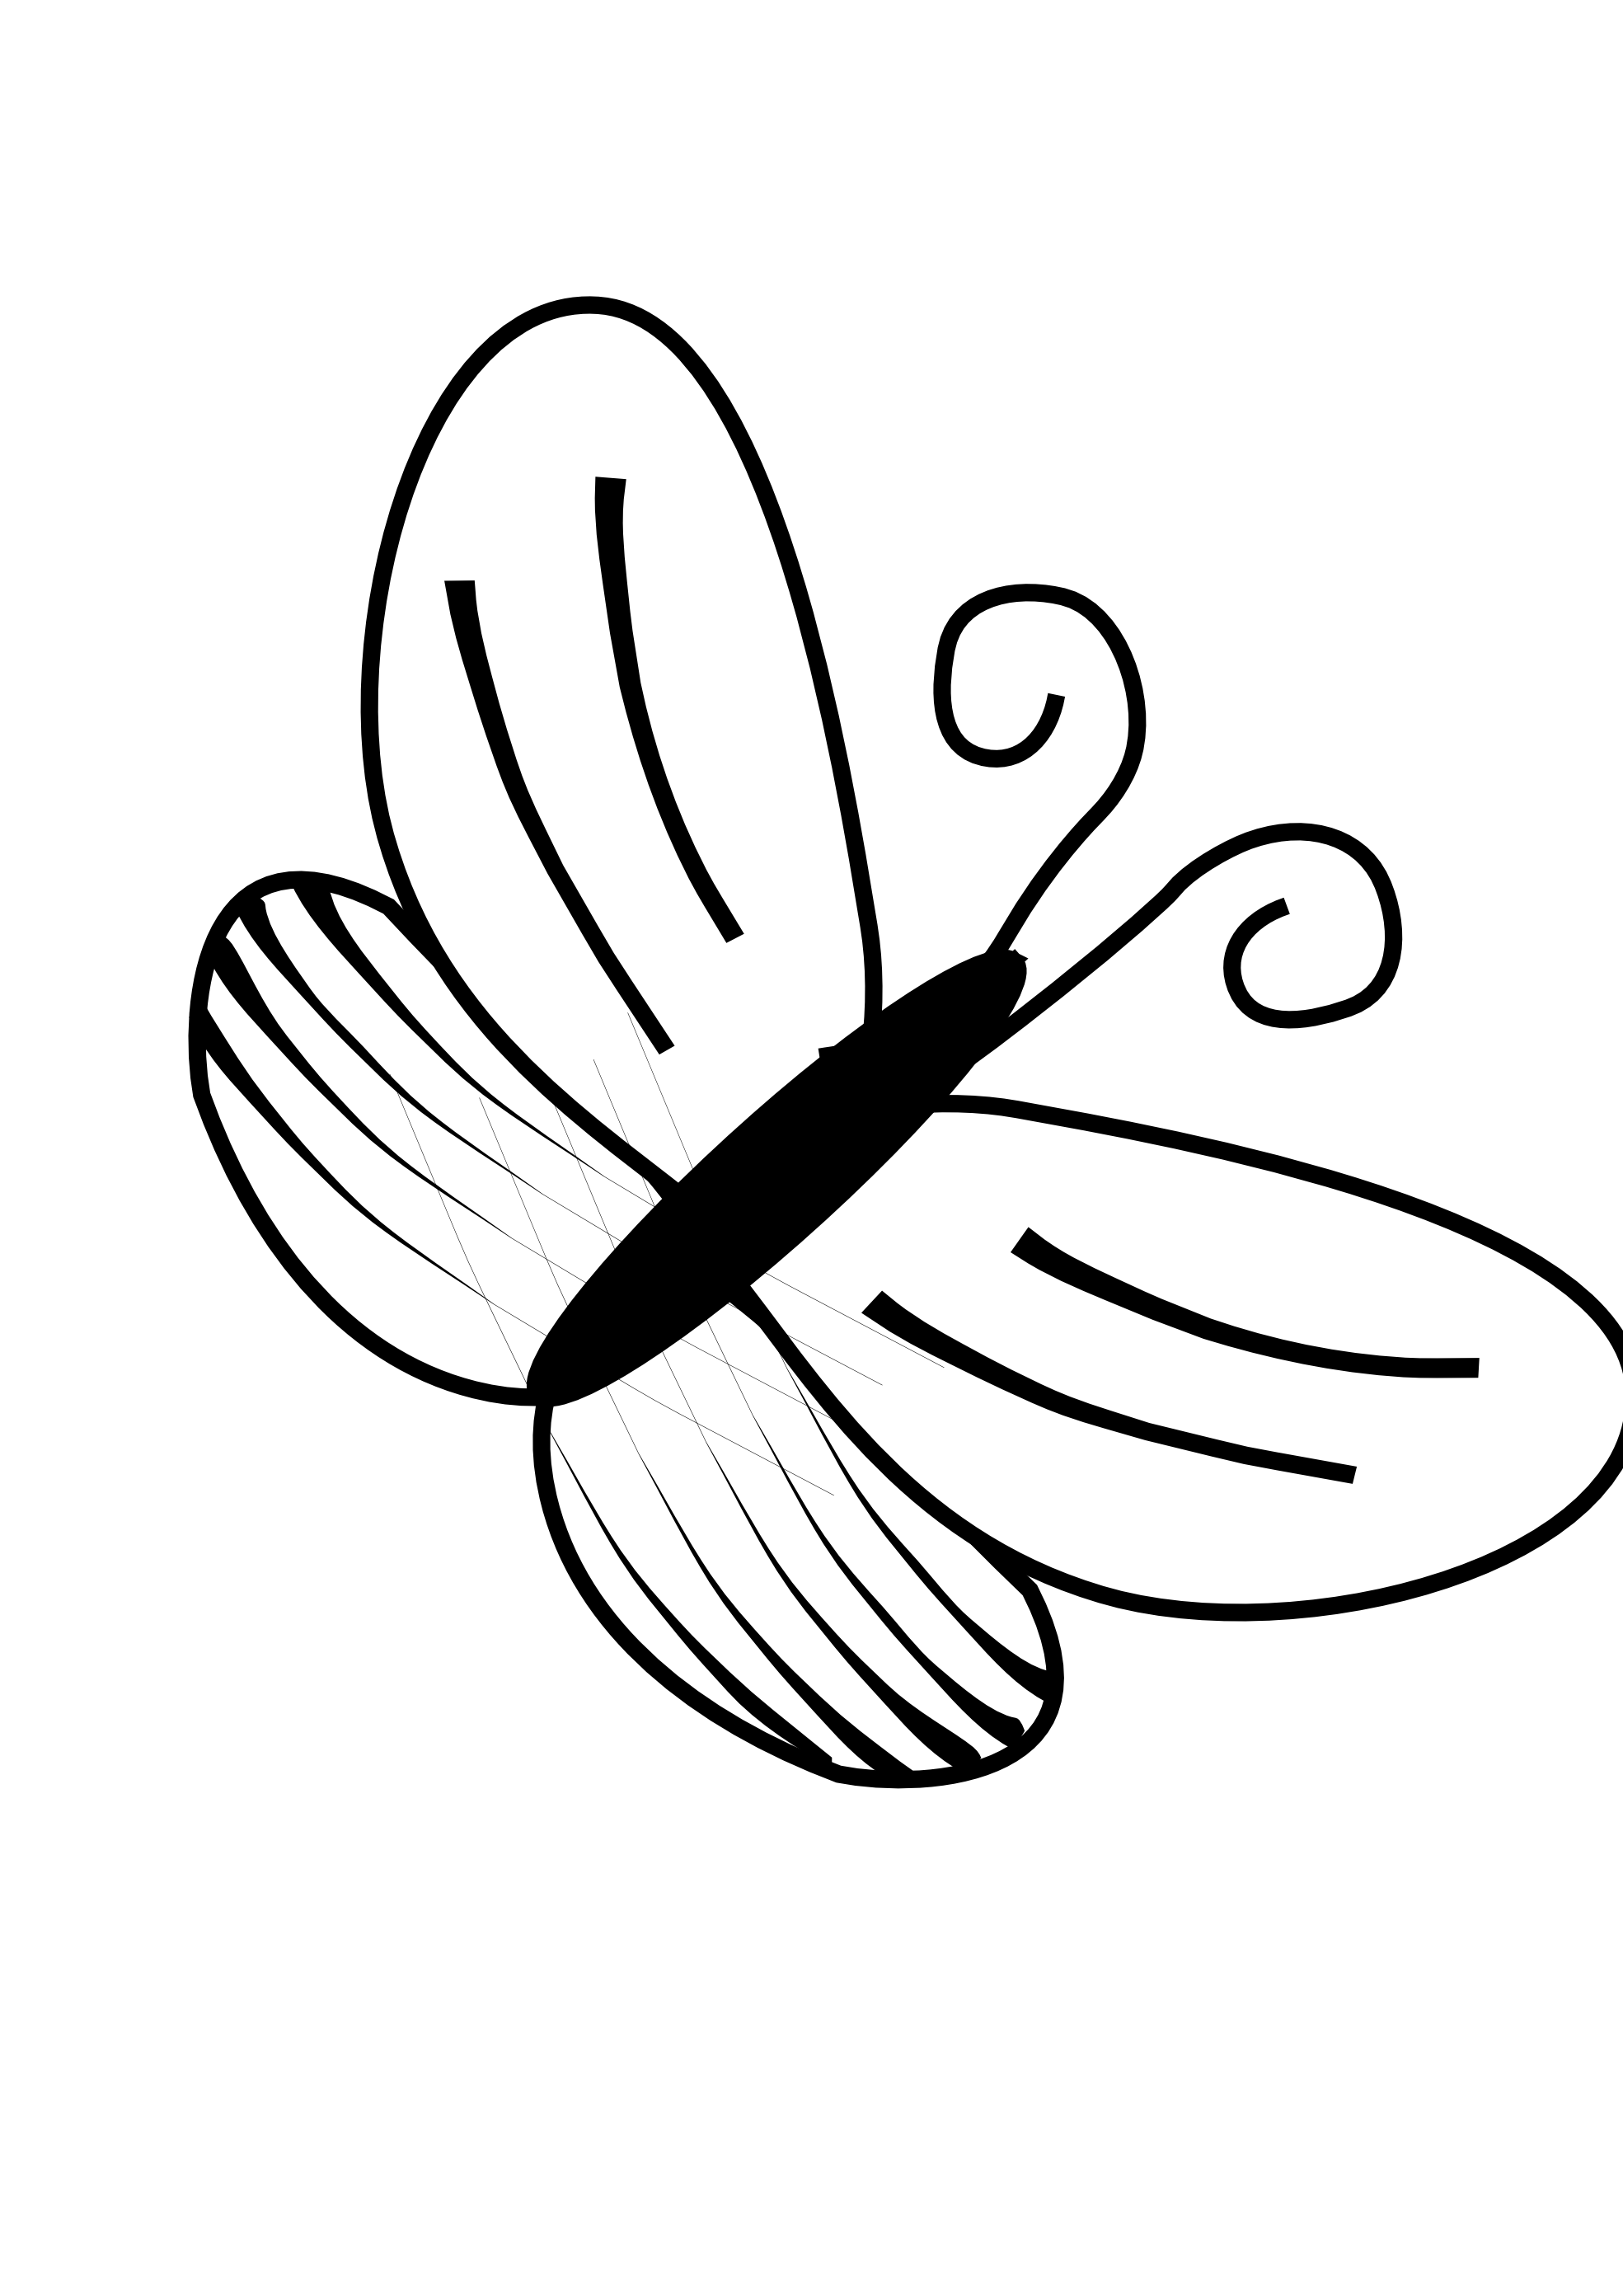 Fridge clipart black and white. Line drawings of butterflies